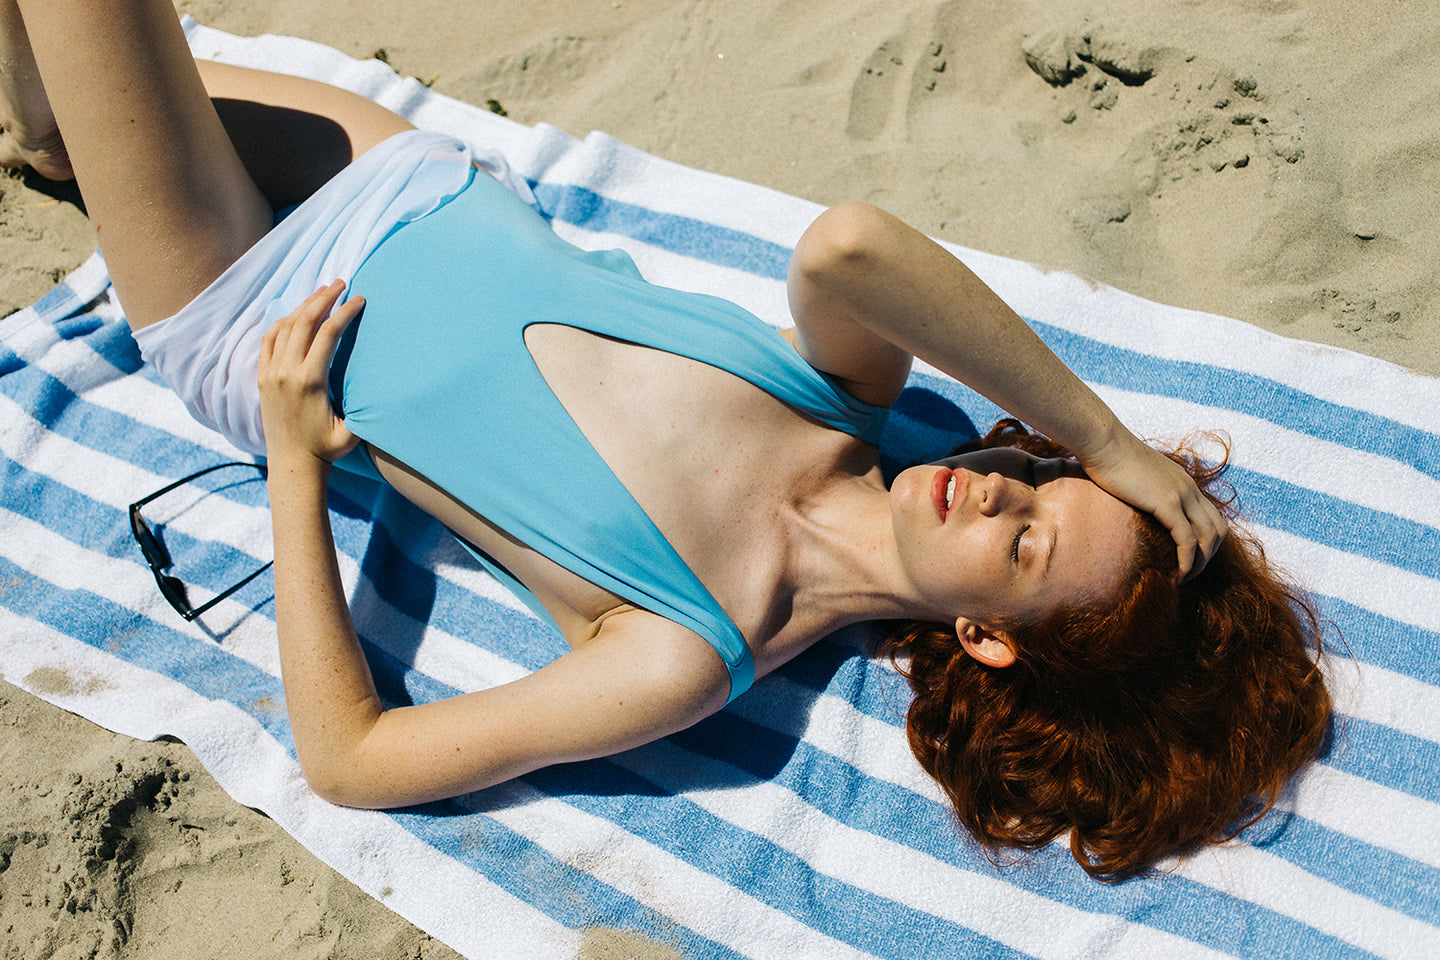 Woman in a blue one piece luxury swimsuit laying down on a beach towel